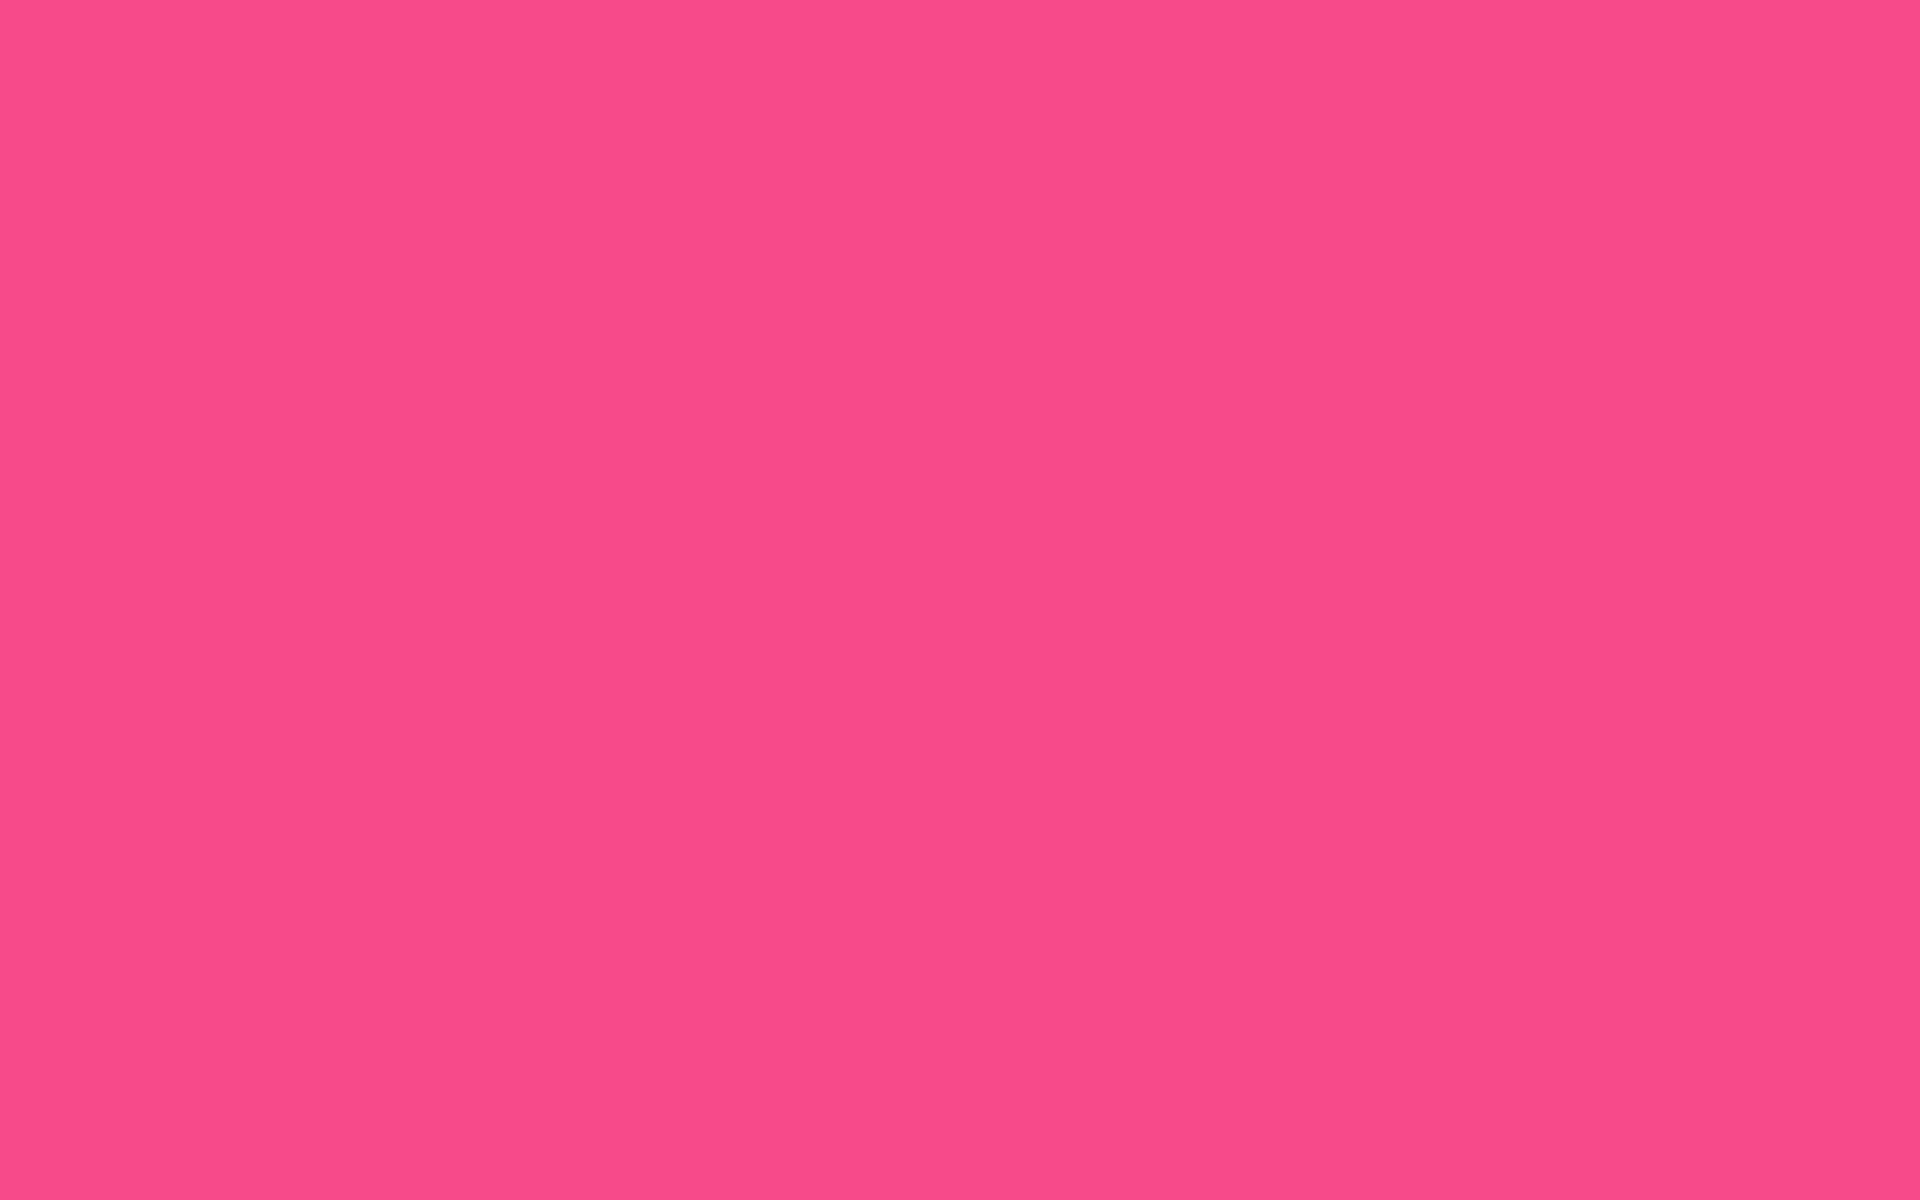 1920x1200 French Rose Solid Color Background